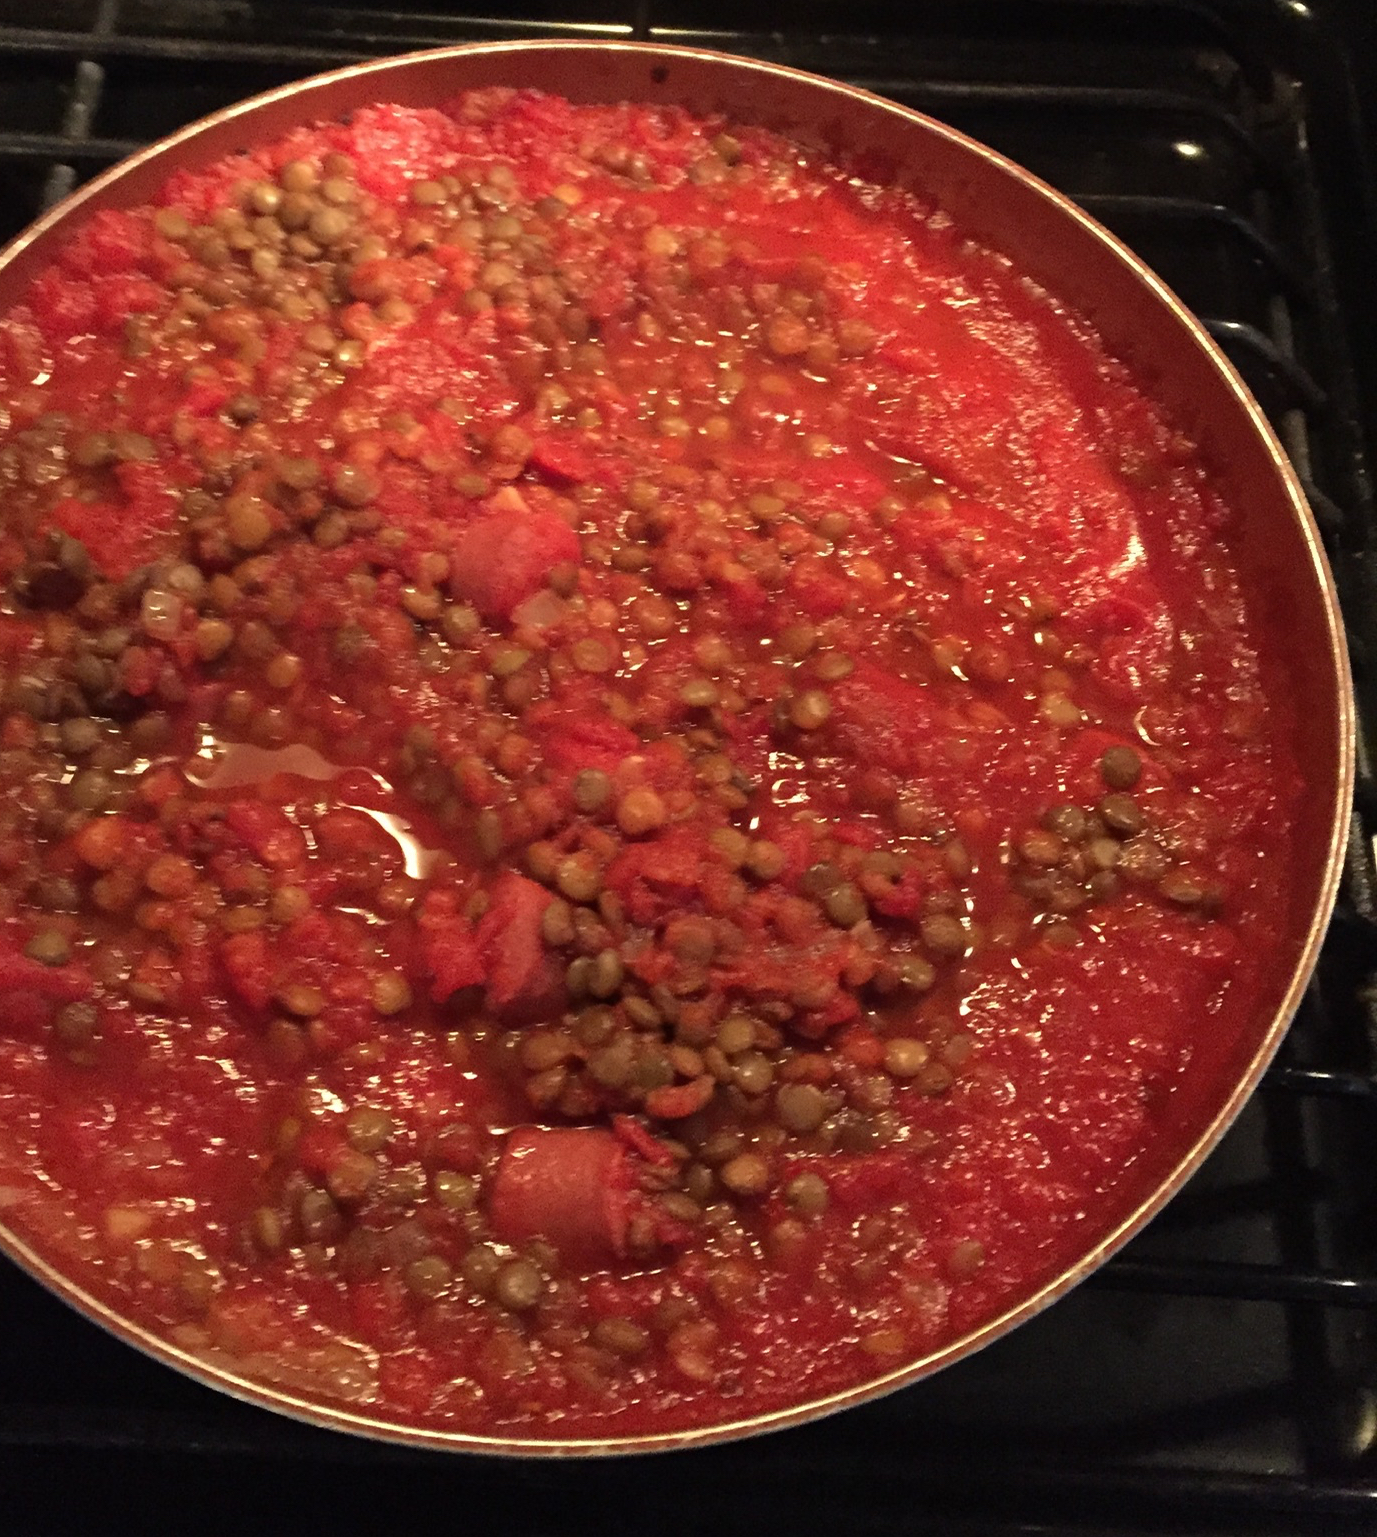 Lentils with Tomatoes Dawn Farrar